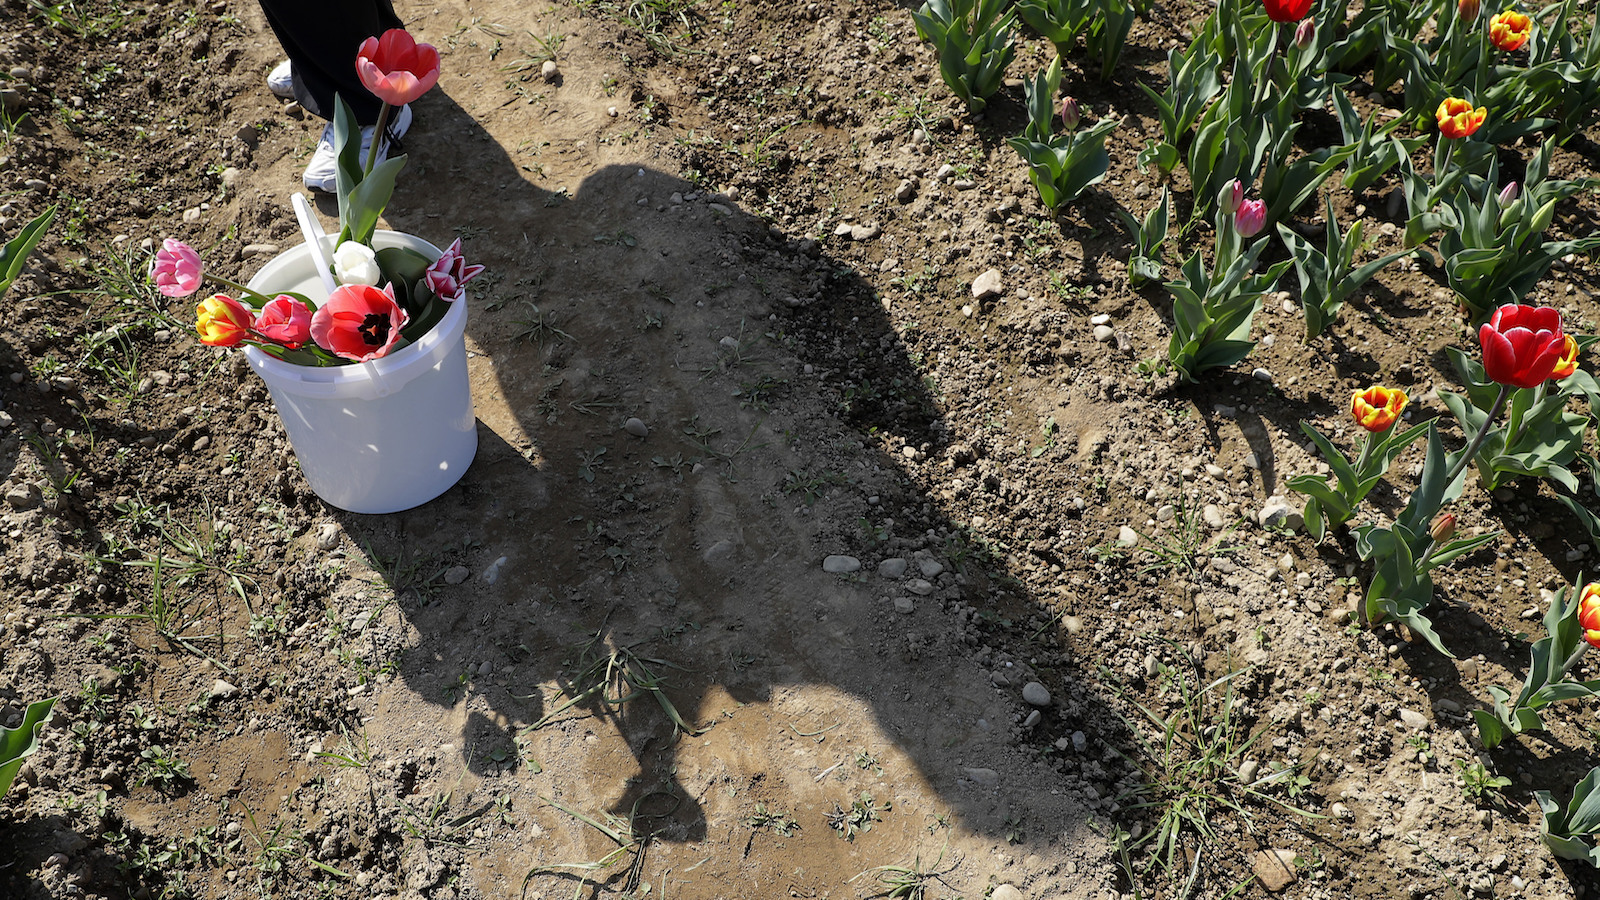 Tulips sit in a bucket at the first Italian tulip field, planted by a Dutch couple to recreate the tradition in the Netherlands where you can pick your own tulip, in Cornaredo, near Milan, Italy, Wednesday, March 29, 2017. Dutch couple Edwin Koeman, and Nitsuje Wolanios planted 250000 tulips of 183 different varieties in a field outside Milan which opened on March 28 and will remain open for three or four weeks, depending on the blooming time of the tulips. (AP Photo/Antonio Calanni)